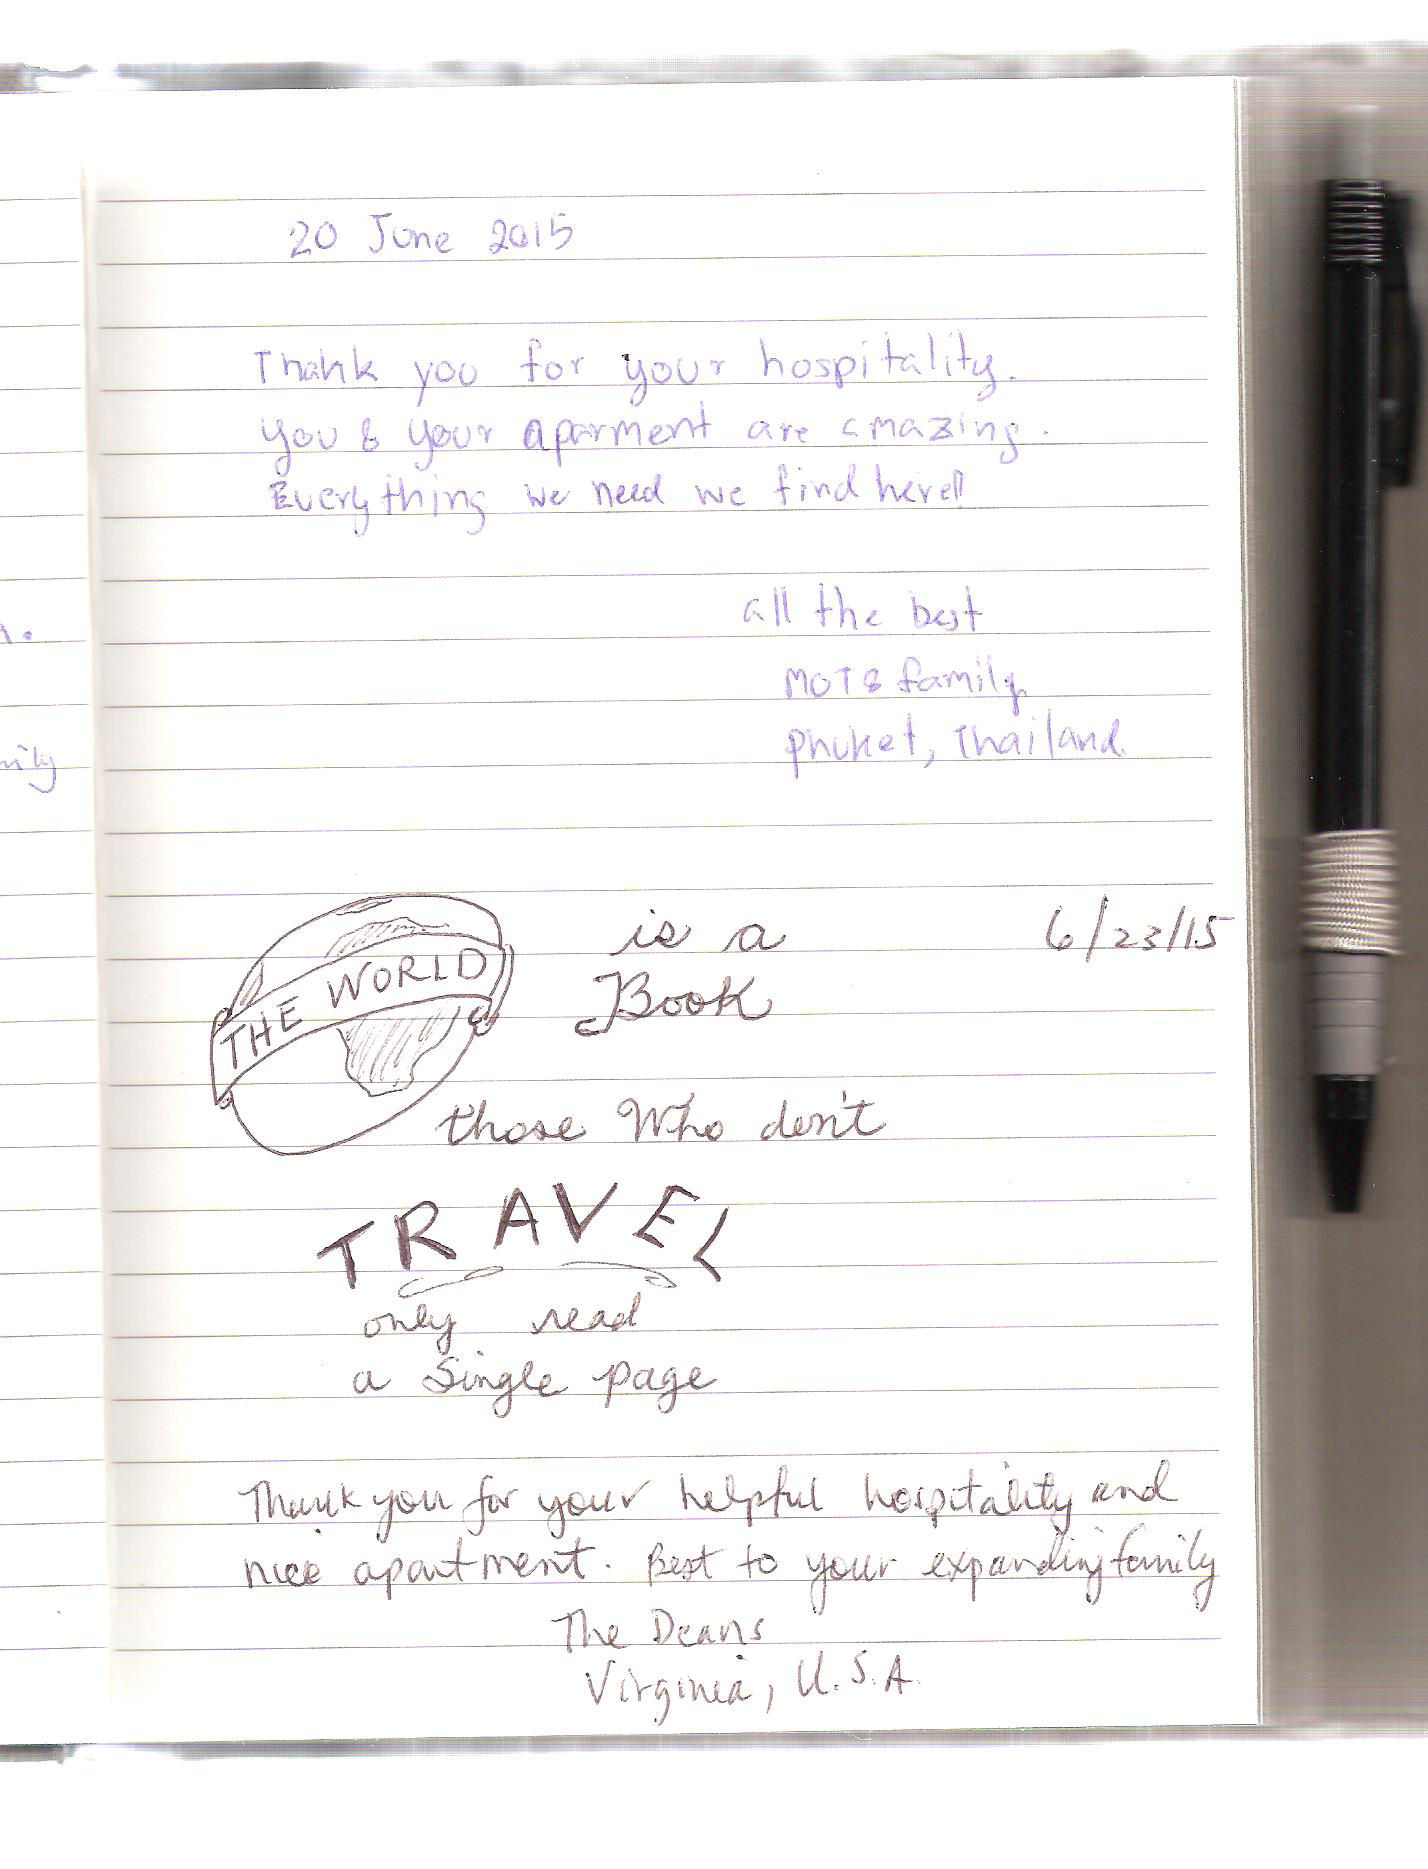 guestbook-page-019